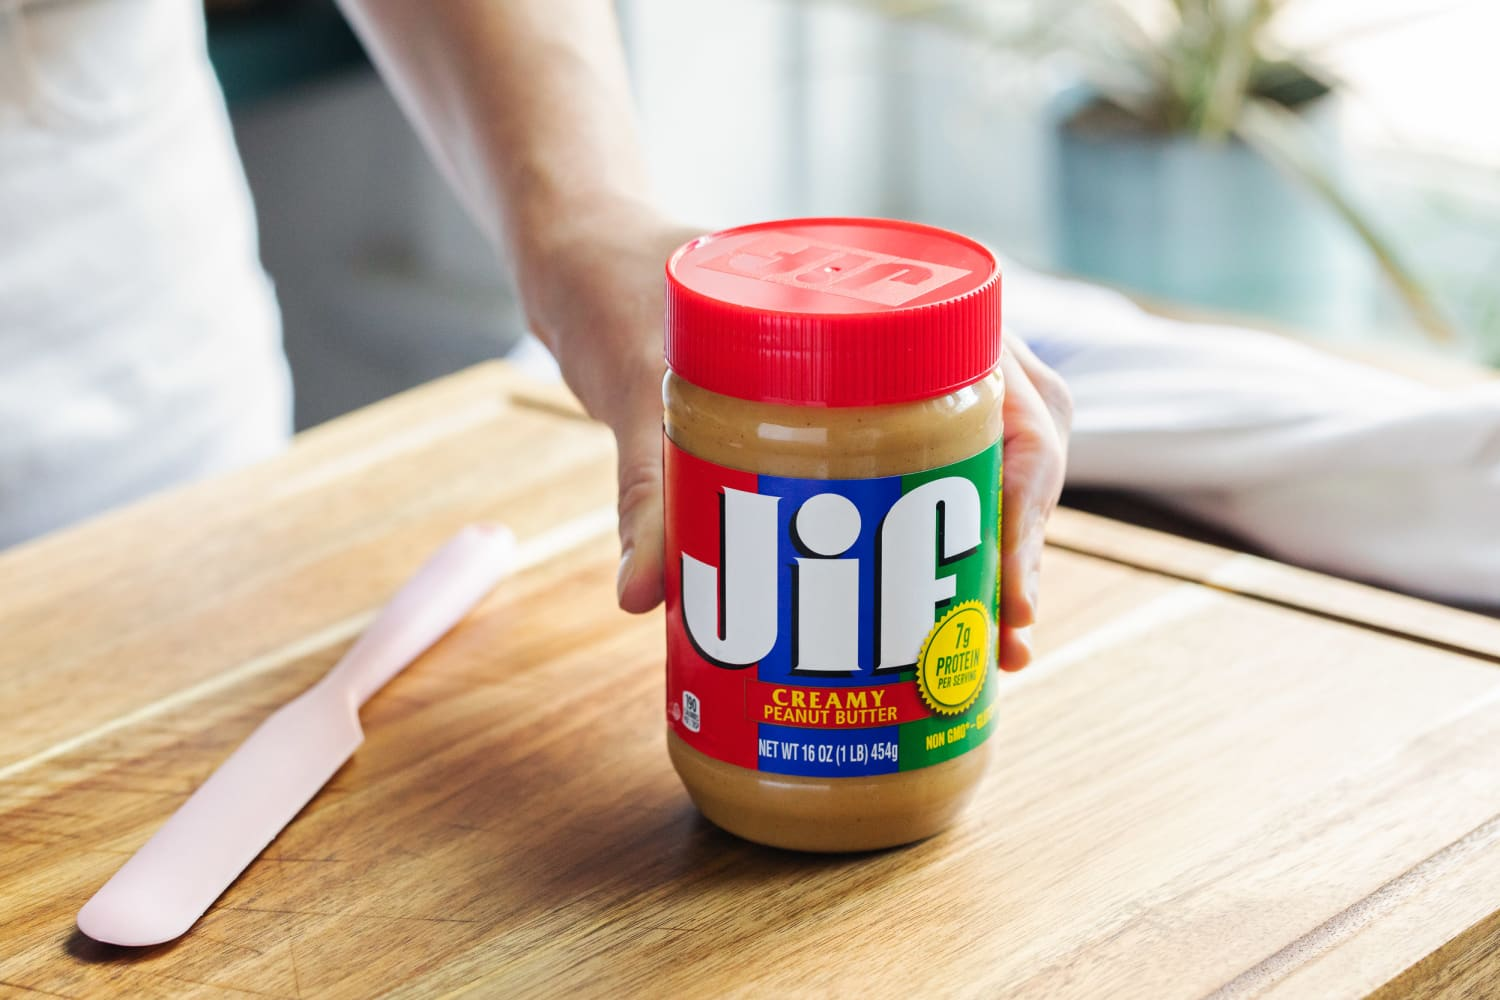 The First Thing to Do with a New Jar of Peanut Butter